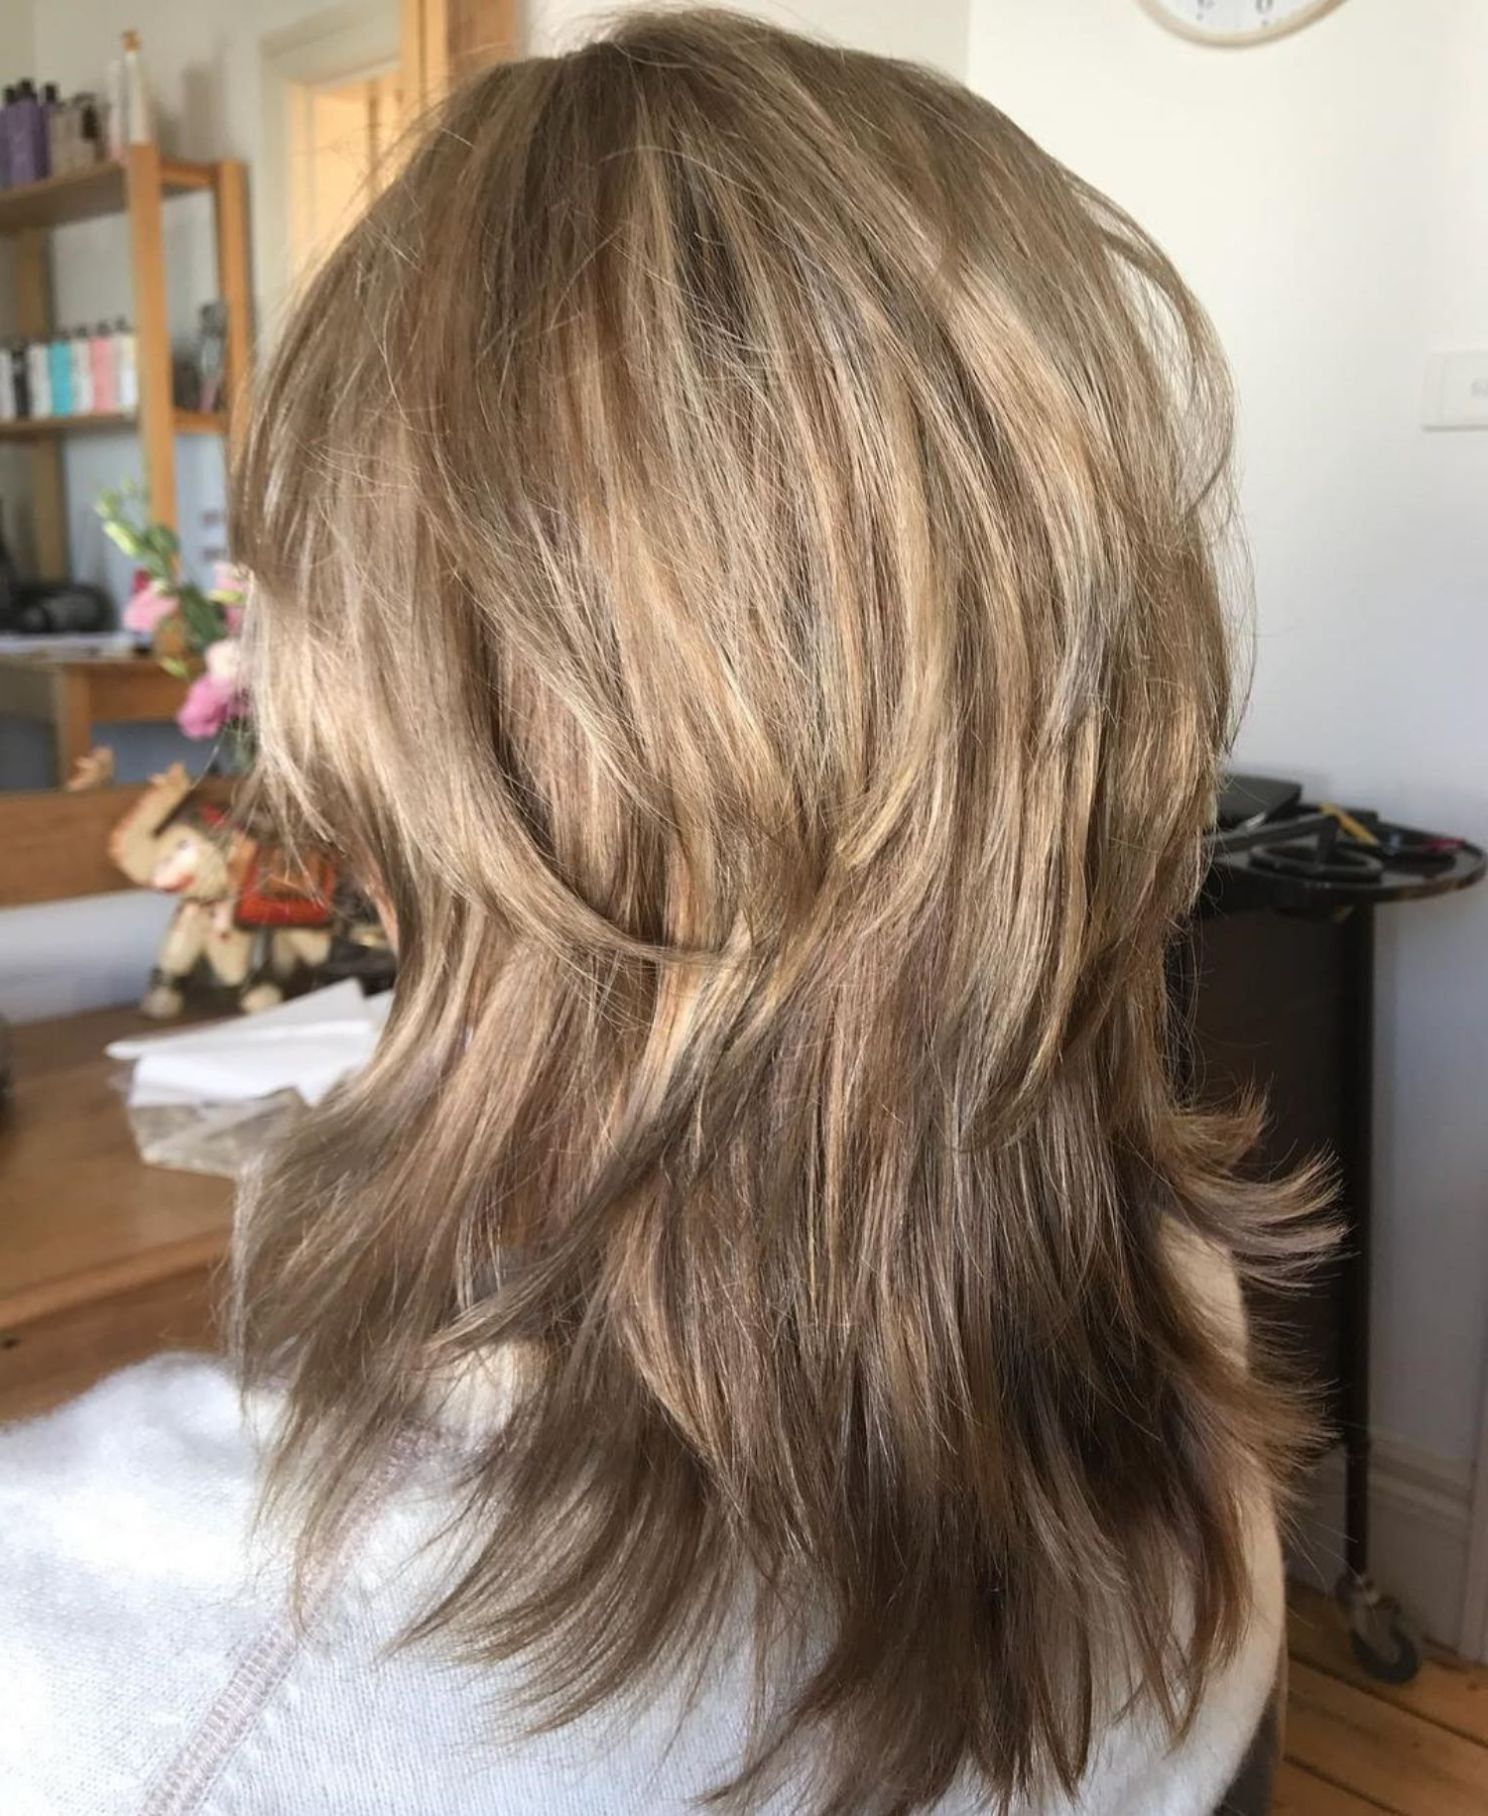 60 Lovely Long Shag Haircuts For Effortless Stylish Looks Pertaining To Famous Long Black Haircuts With Light Flipped Up Ends (View 2 of 20)